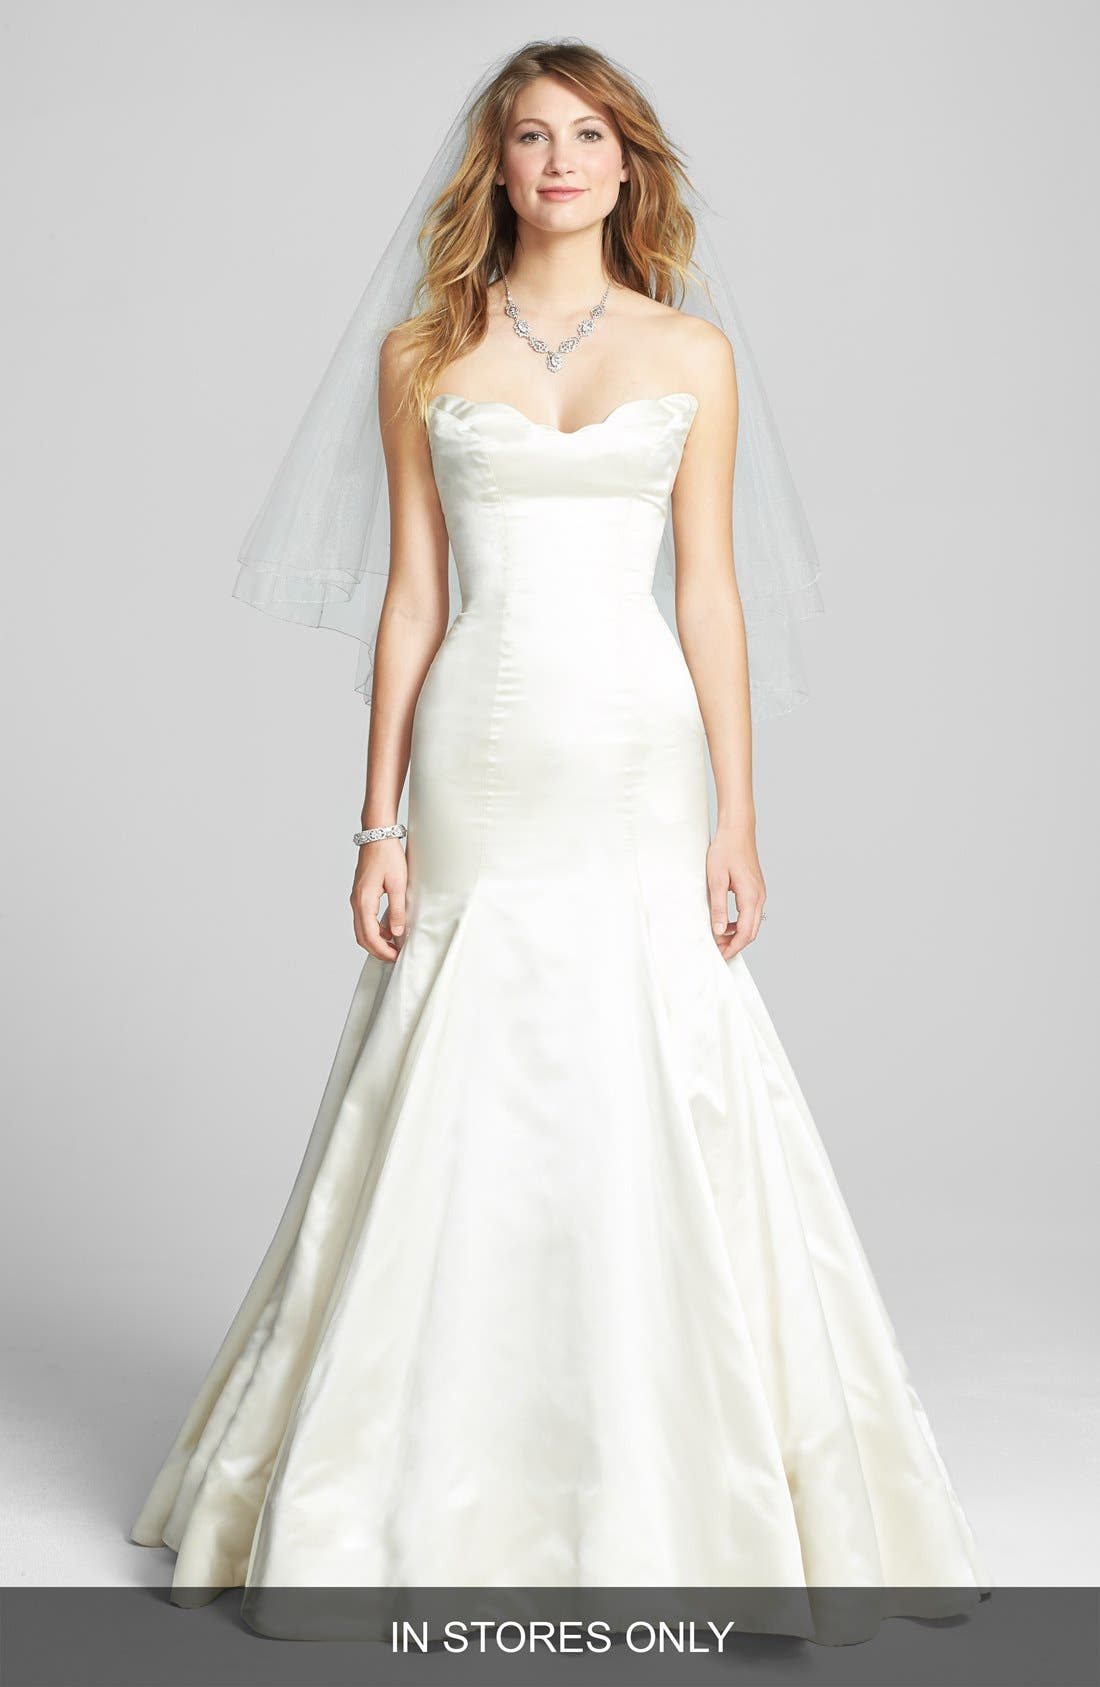 Alternate Image 1 Selected - Reem Acra 'Iris' Sculpted Neckline Strapless Satin Mermaid Gown (In Stores Only)